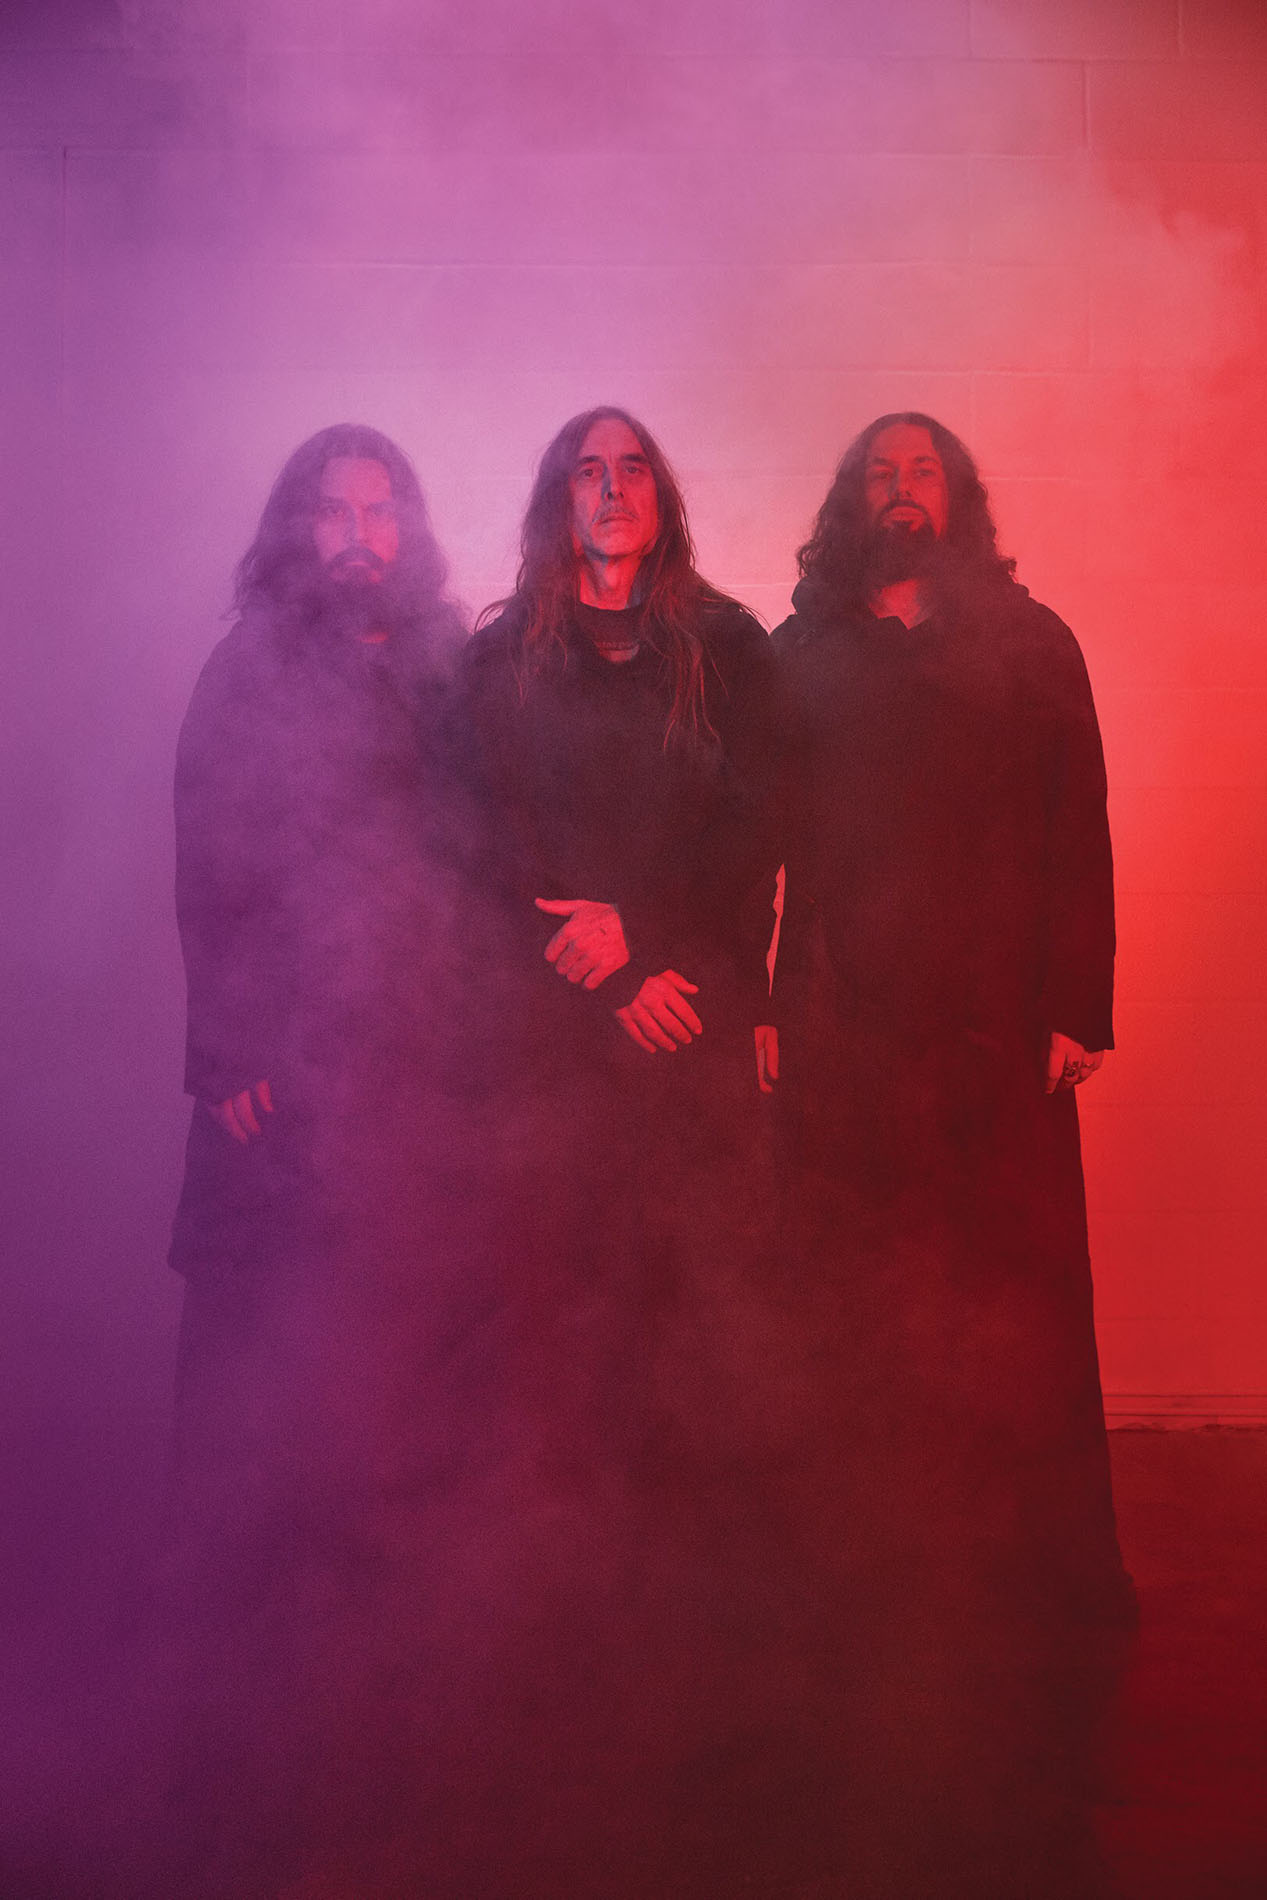 SUNN O))) @ Stereolux SOLD OUT!